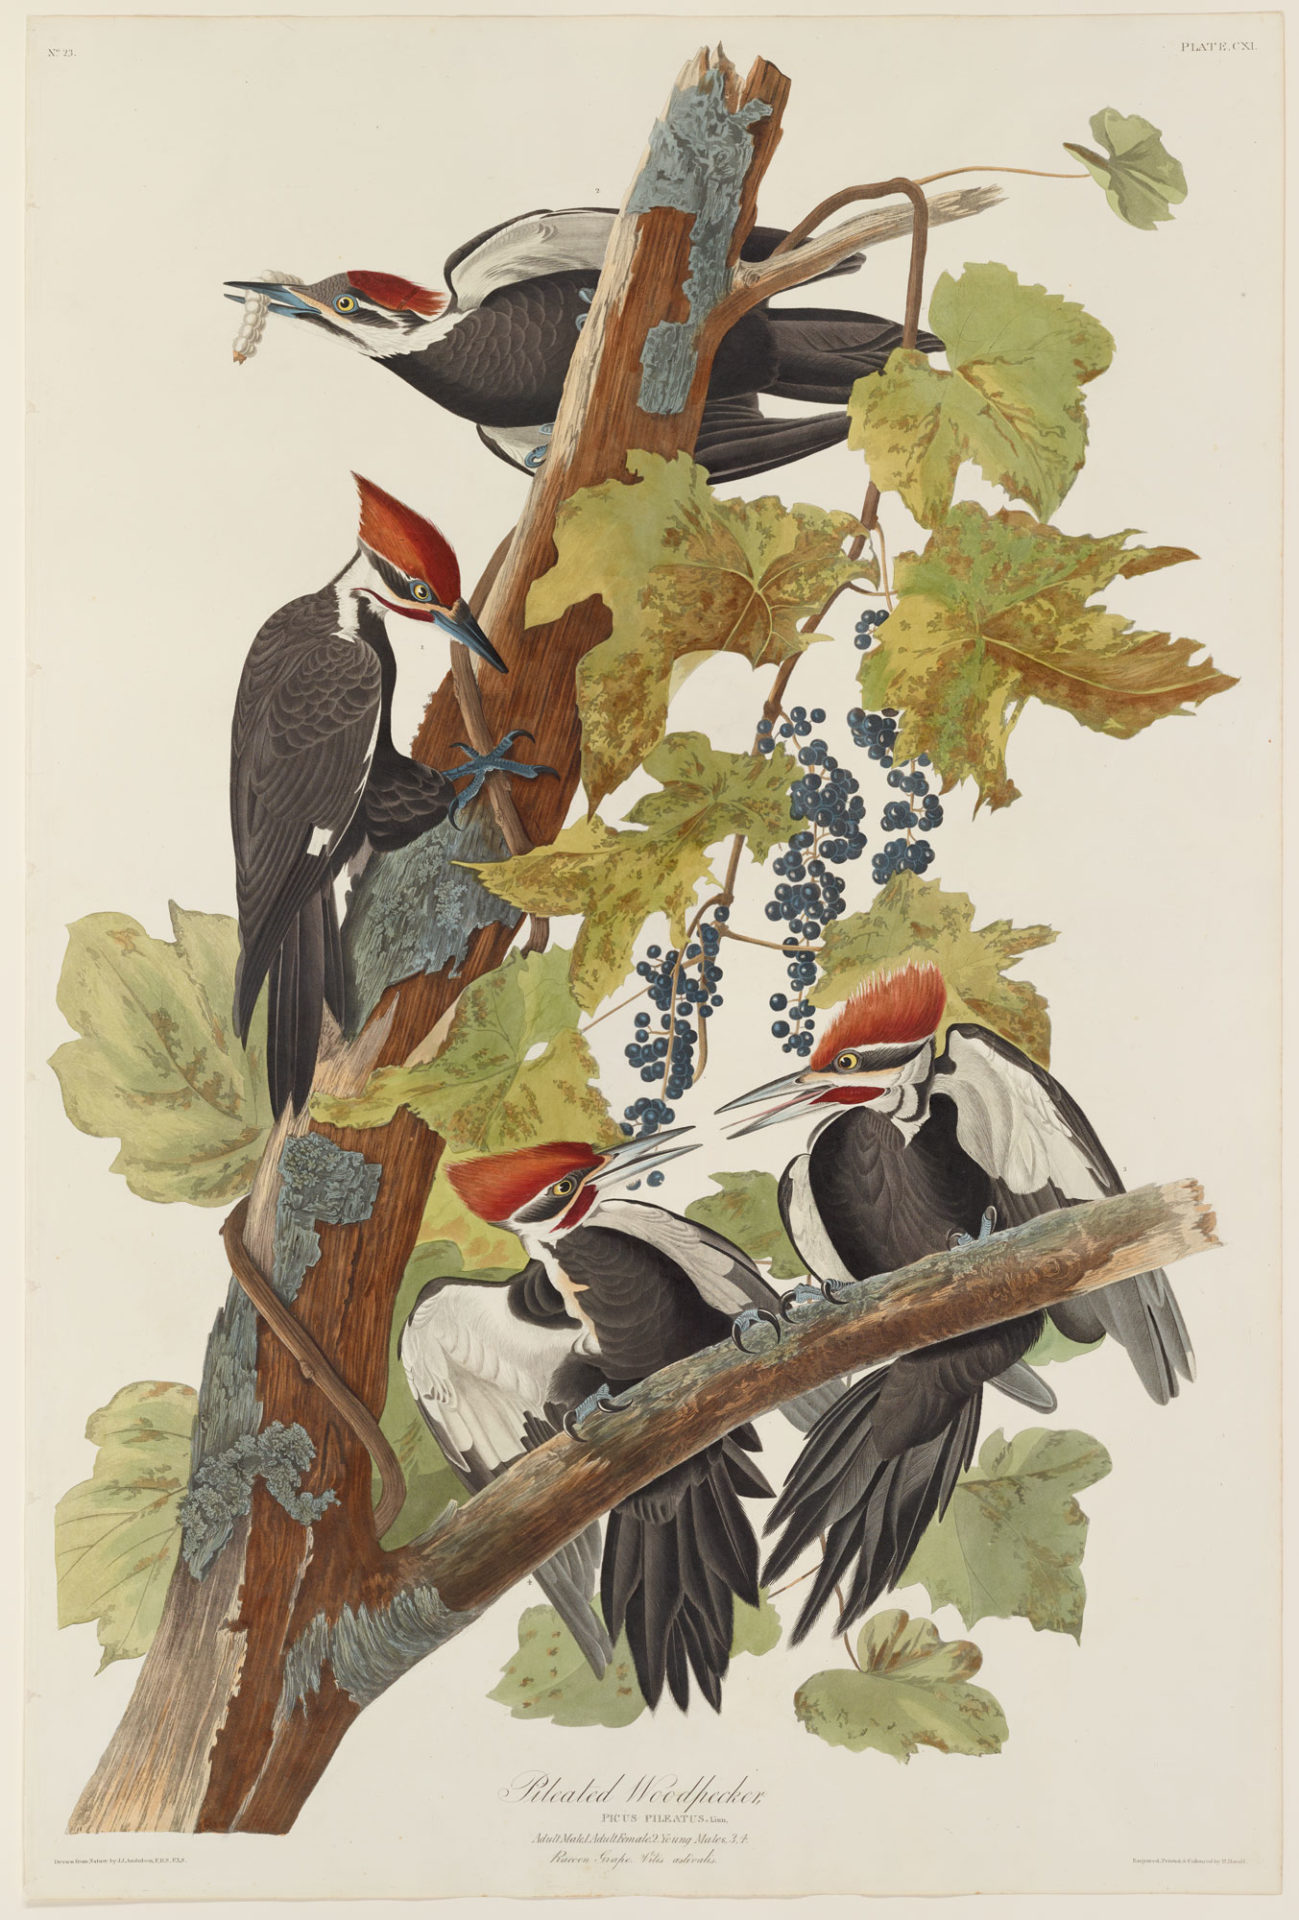 Pileated Woodpecker, Plate 111 Hand-colored engraving from The Birds of America, 1826-1838